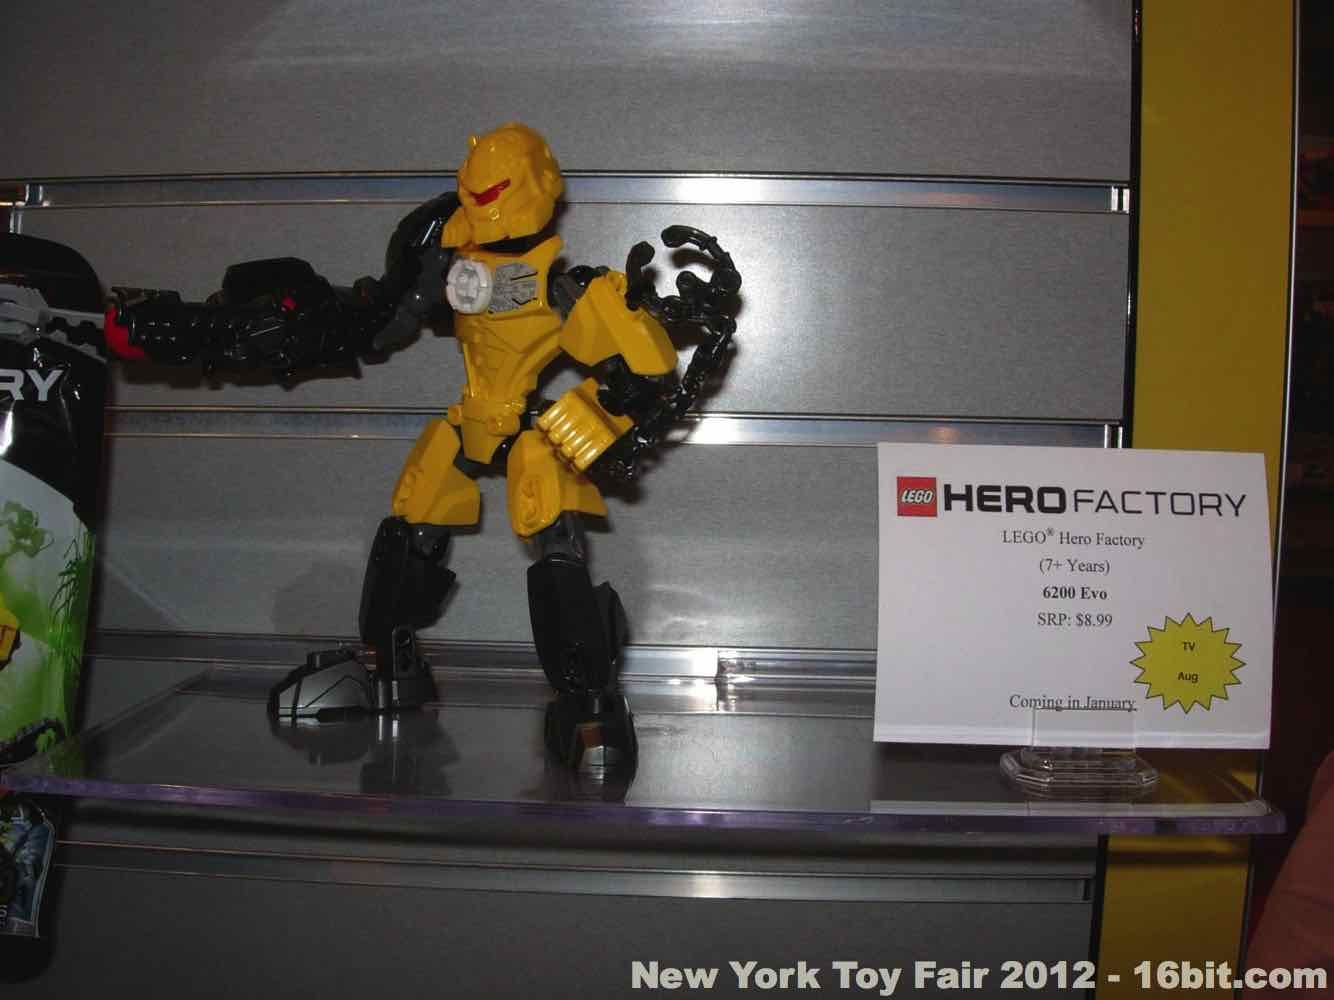 16bitcom Toy Fair Coverage of LEGO Hero Factory from